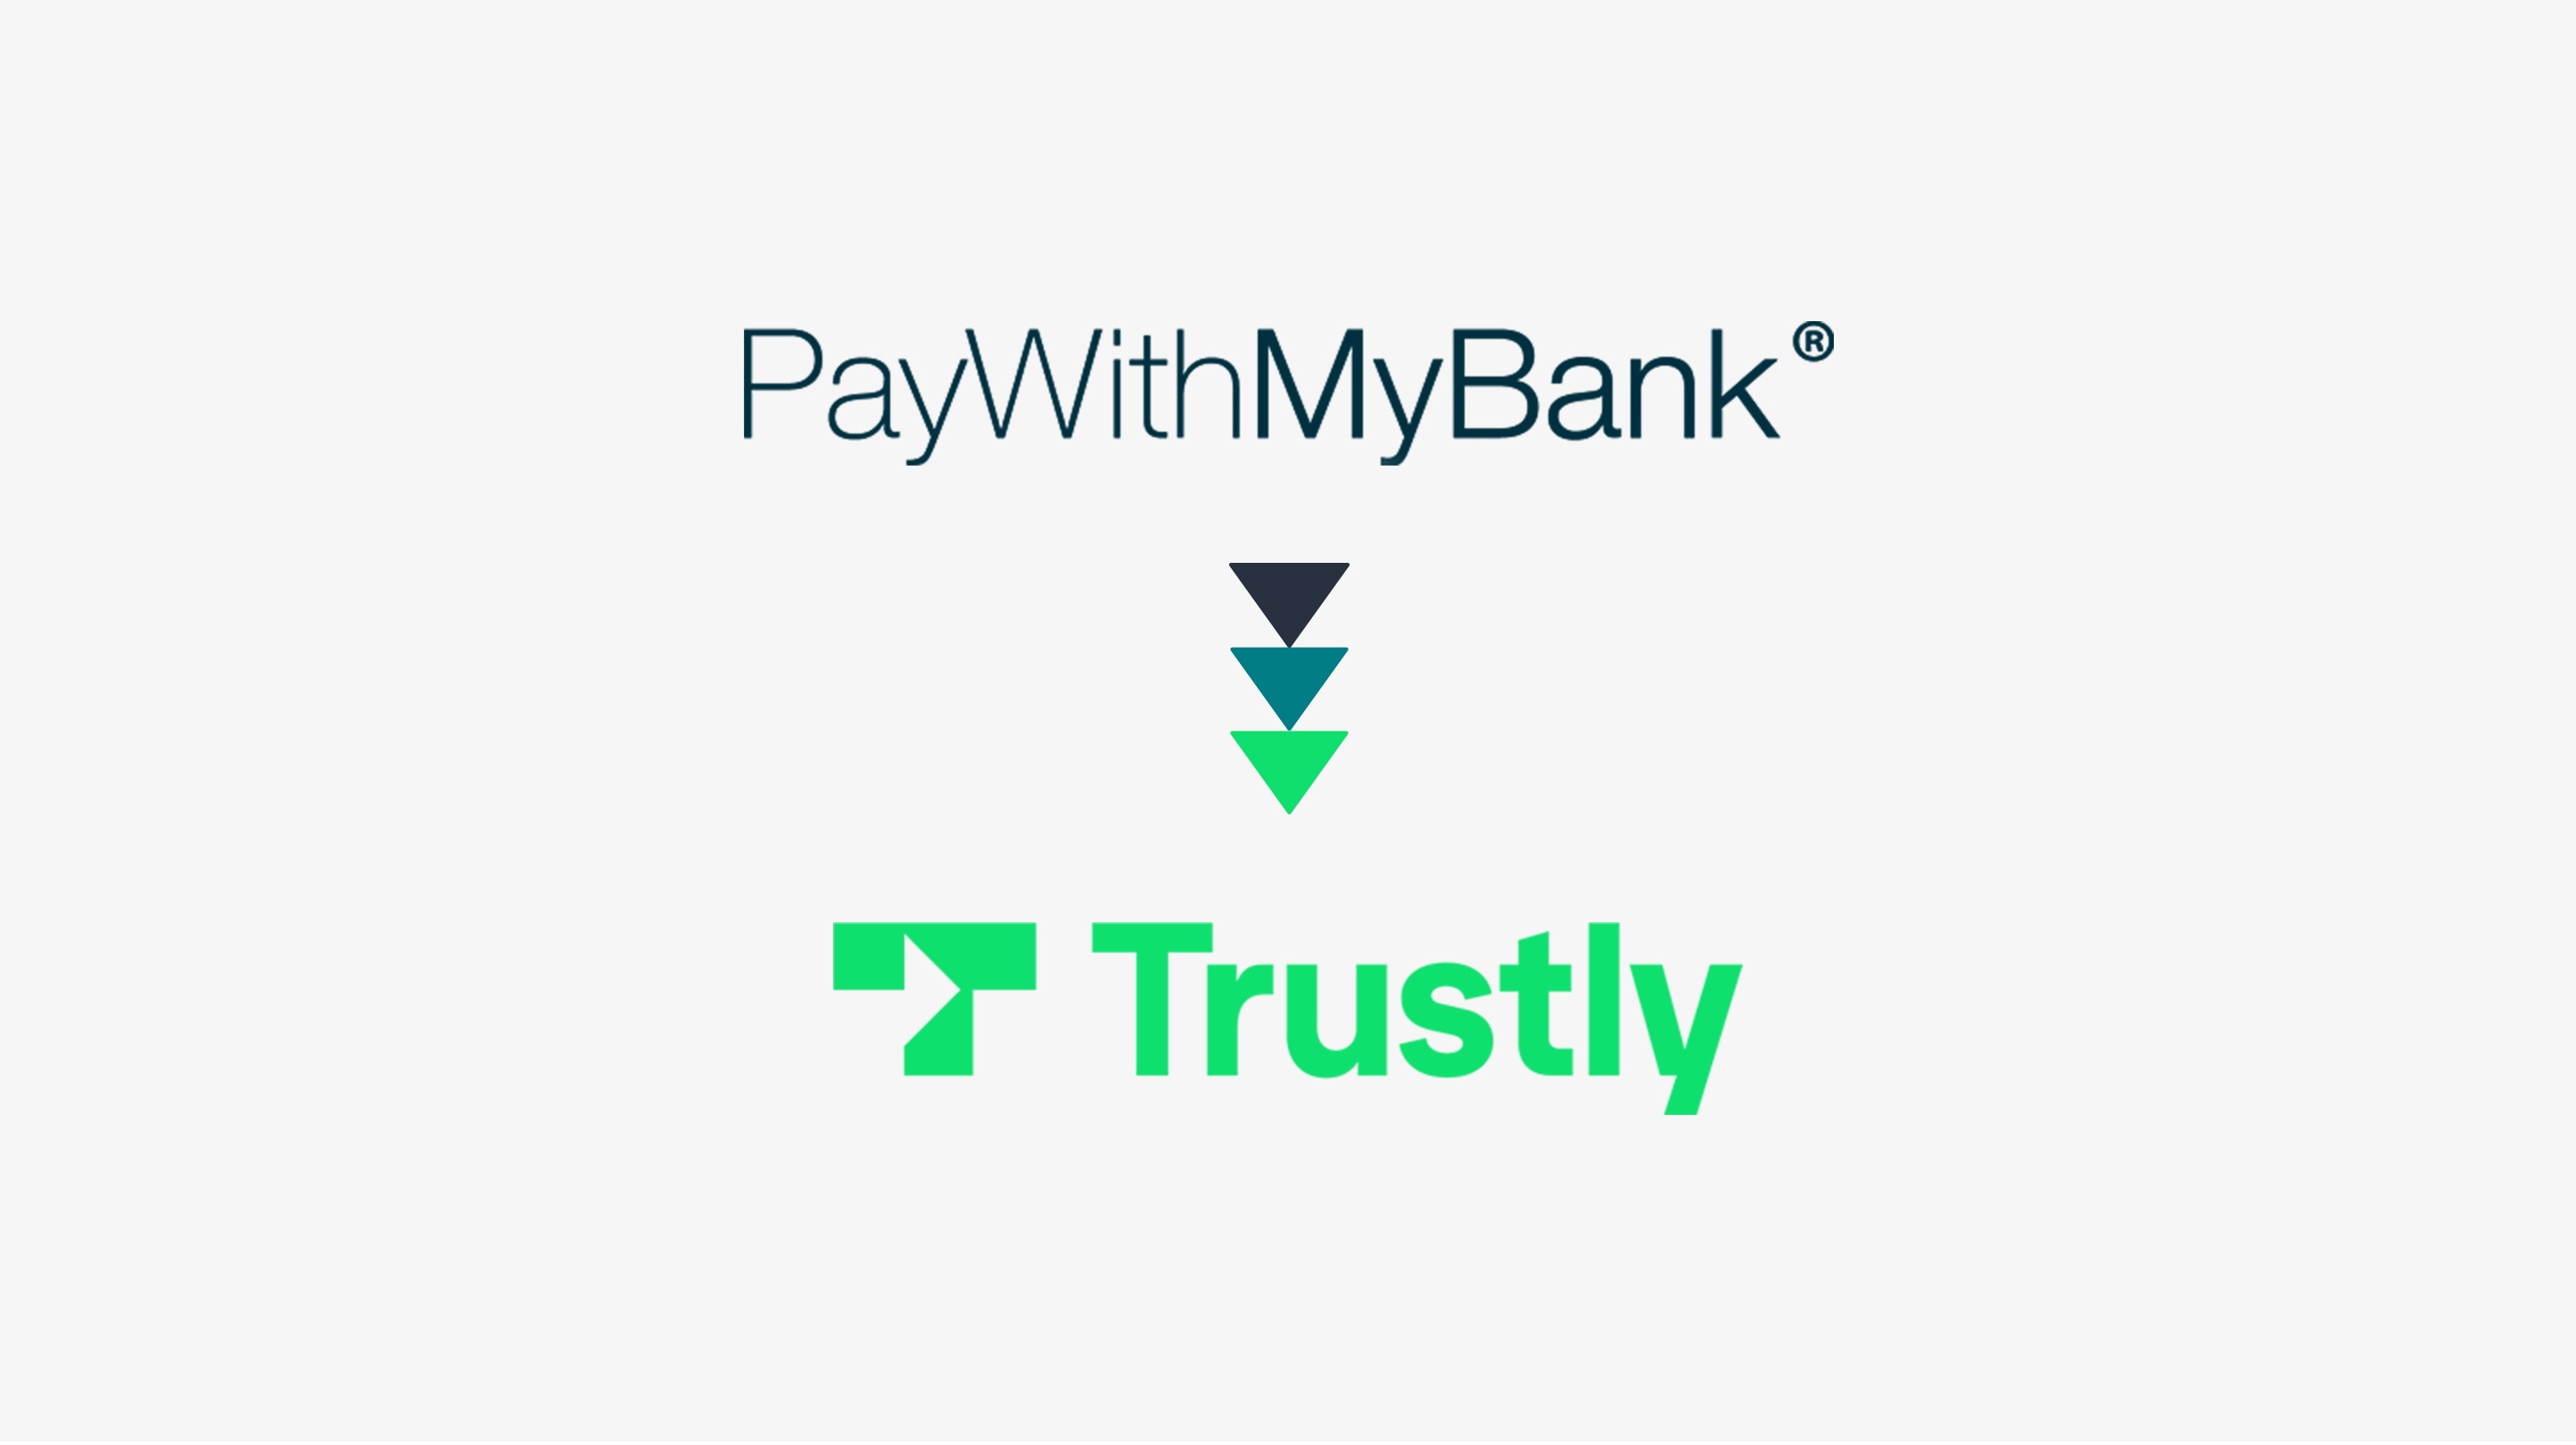 pwmb-trustly-1444px-at-2x